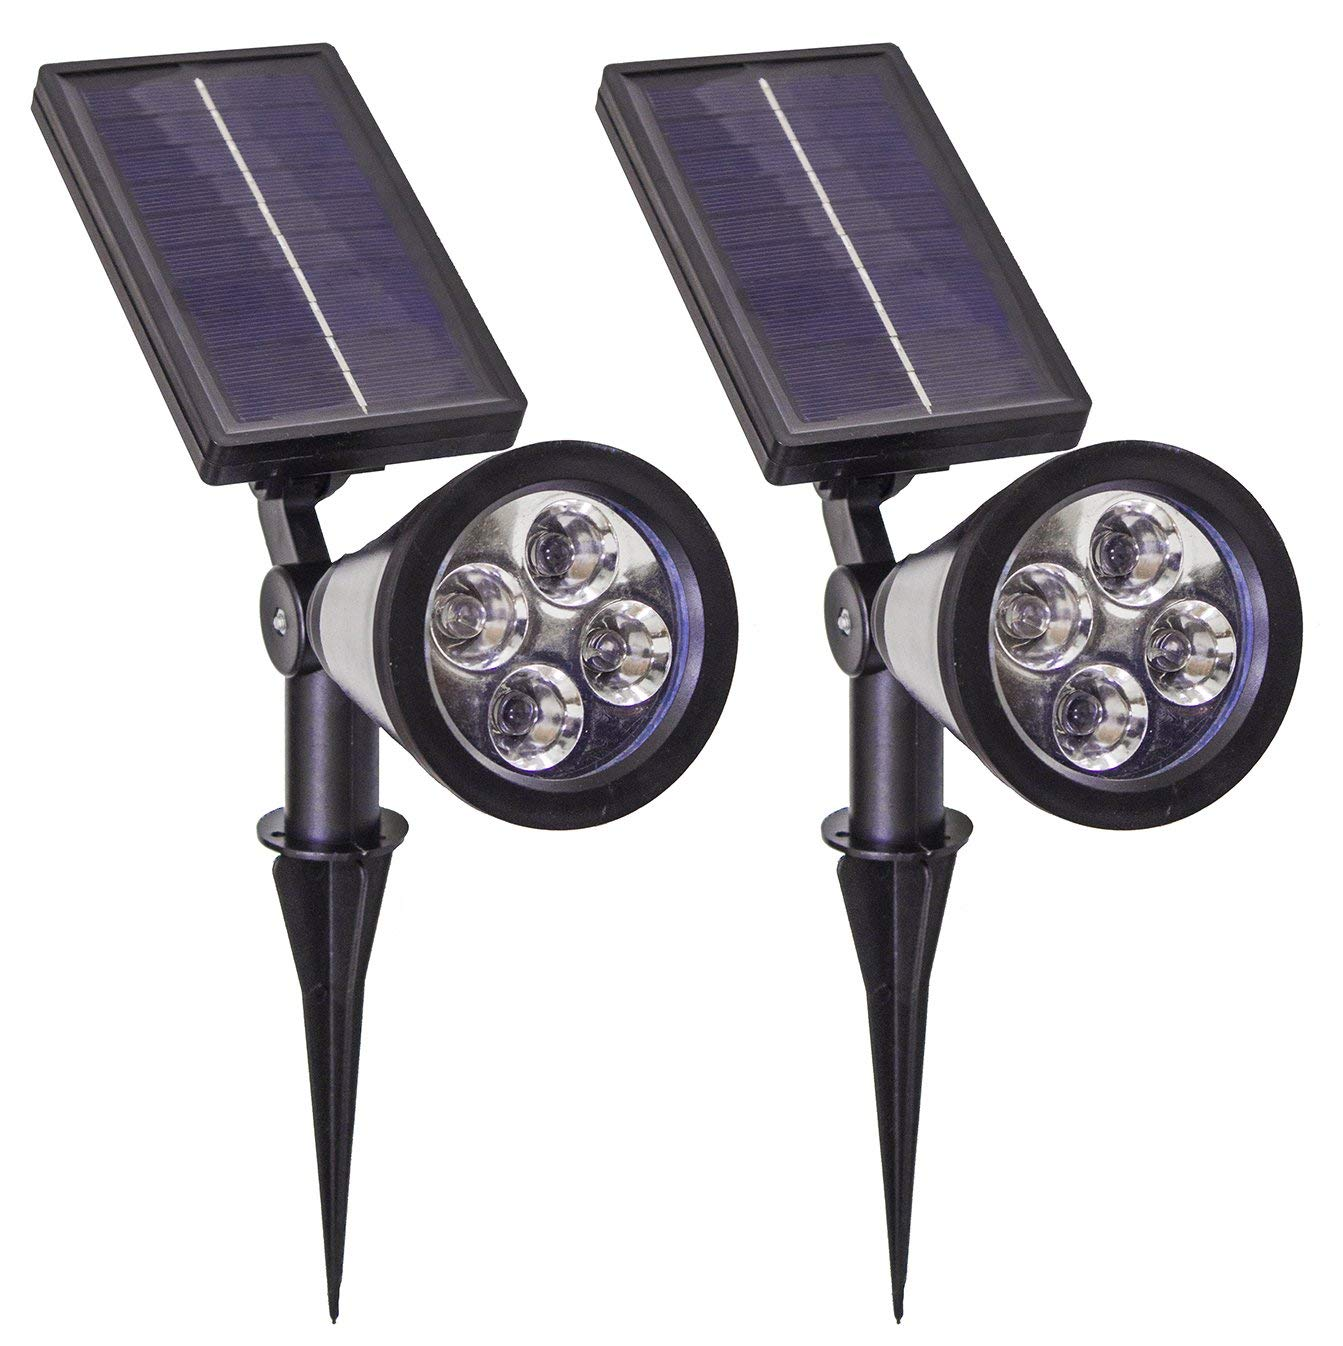 Solar yard lights outdoor, solar chrsitmas tree lights outdoor,solar tree lights outdoor